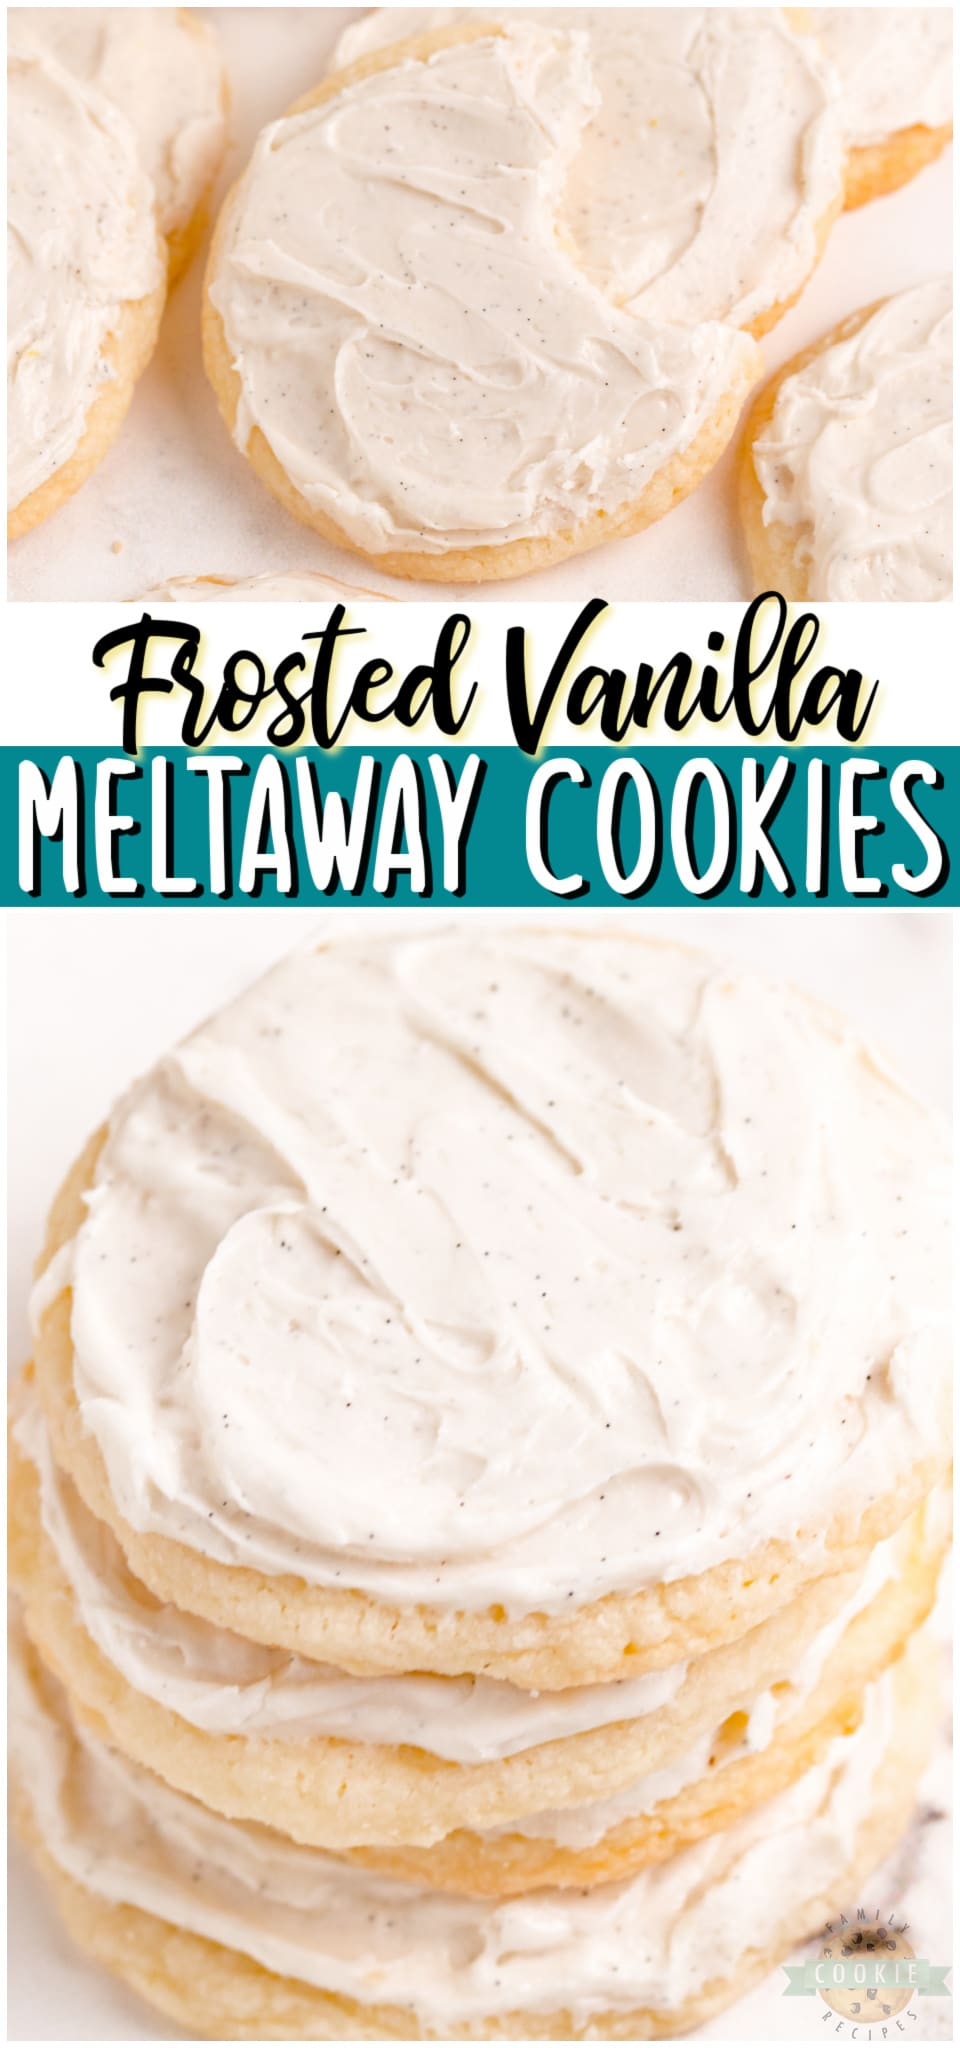 Vanilla Meltaways are a melt-in-your-mouth soft cookie topped with a light vanilla bean frosting. Very vanilla soft, sweet cookie that everyone loves! #meltaways #vanilla #cookies #baking #dessert #easyrecipe from FAMILY COOKIE RECIPES via @familycookierecipes